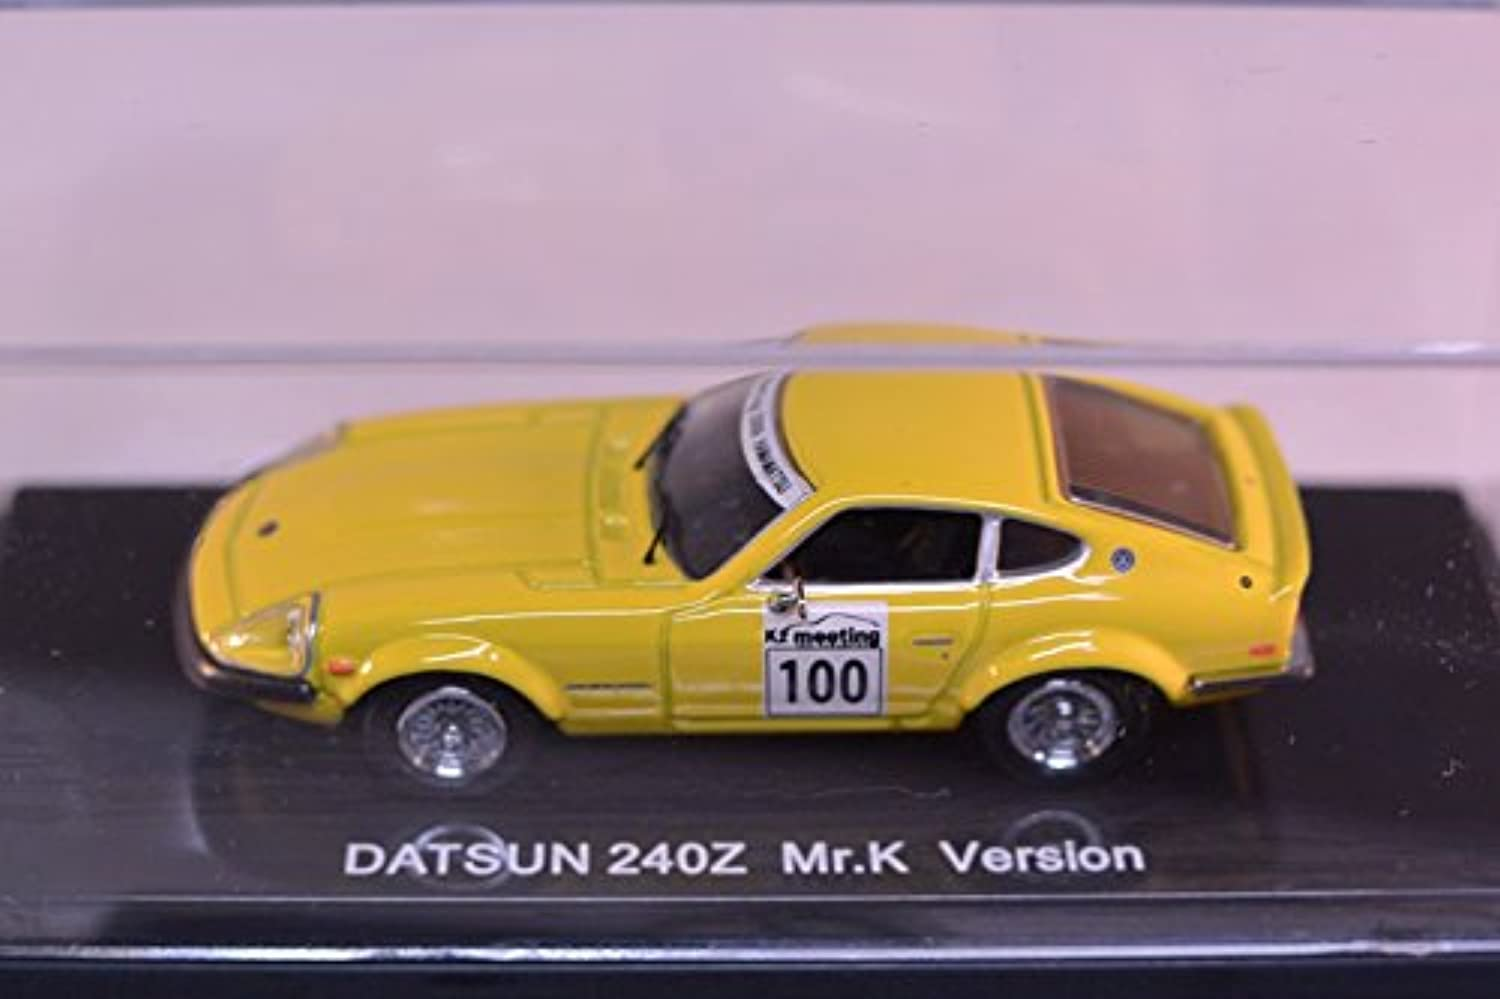 京商 イベント限定品 DAYSUN 240Z Mr.K Version イエロー 06002KA2 1/64 beadscollection